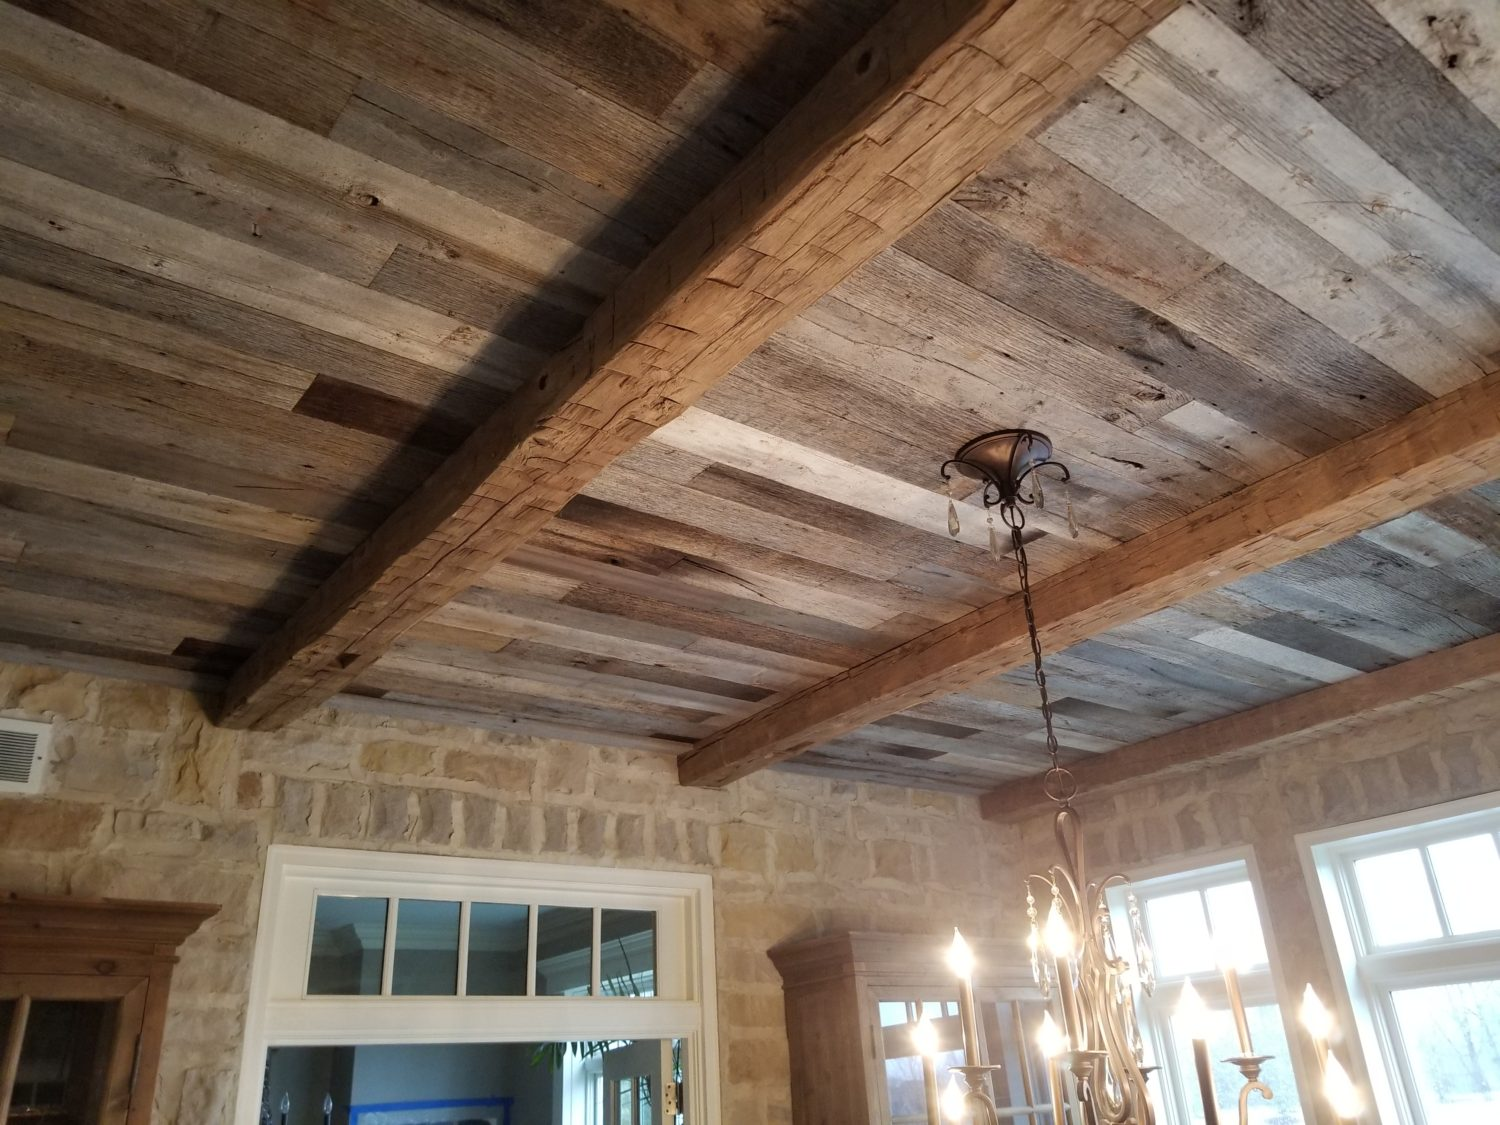 Ceiling Beams Ohio Valley Reclaimed Wood